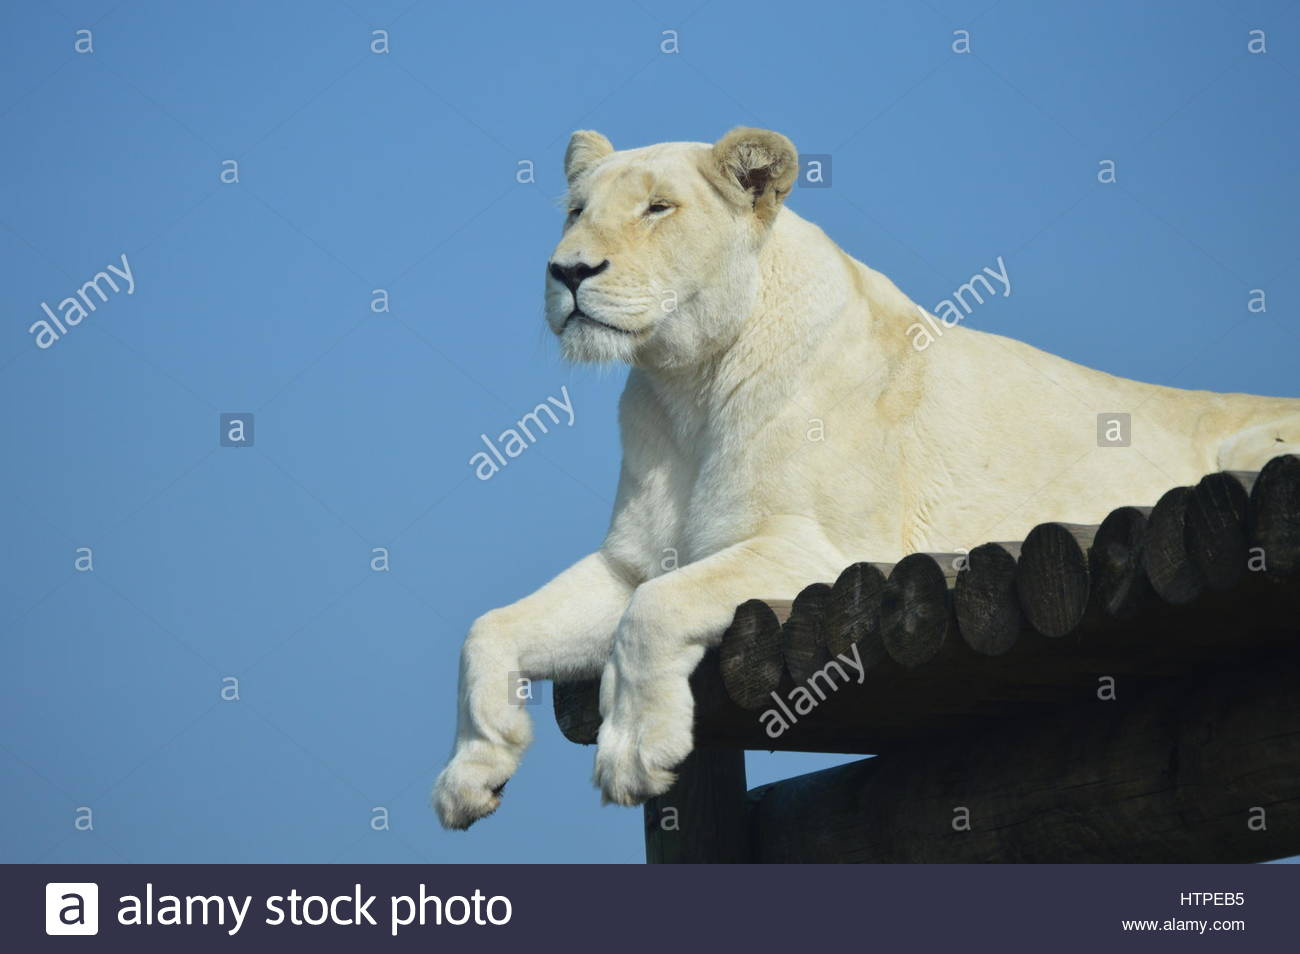 White Lioness at West Midlands Safari Park - Stock Image